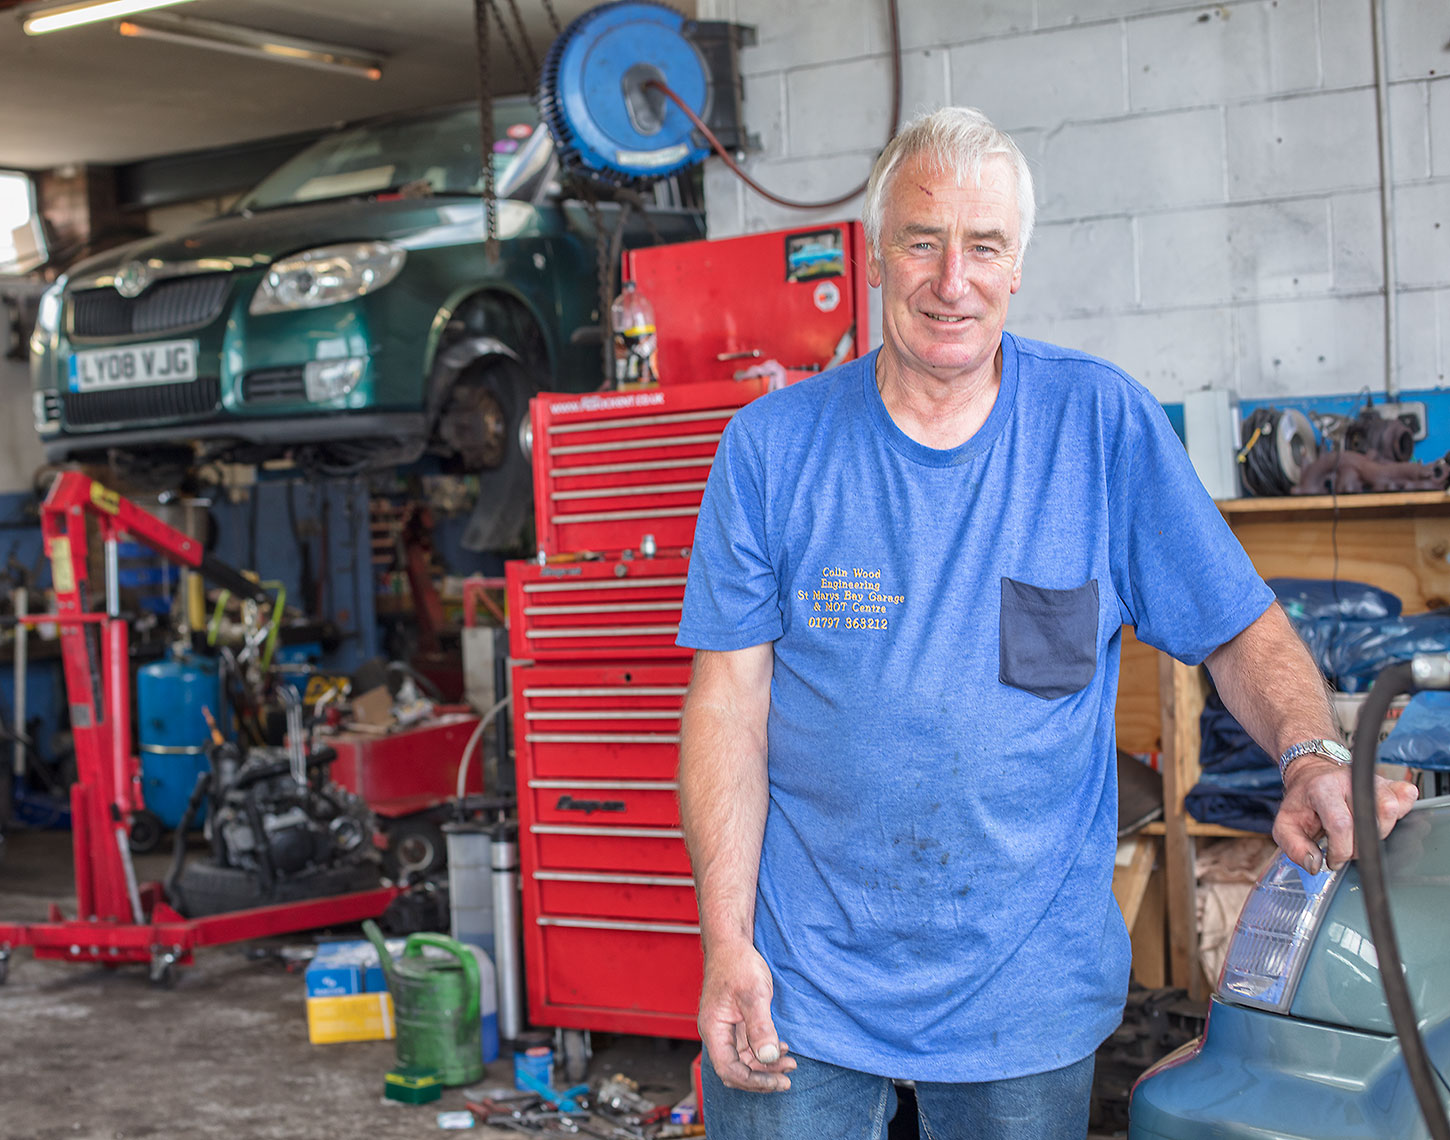 Older male automotive engineer in blue shirt smiling and standing in front of garage